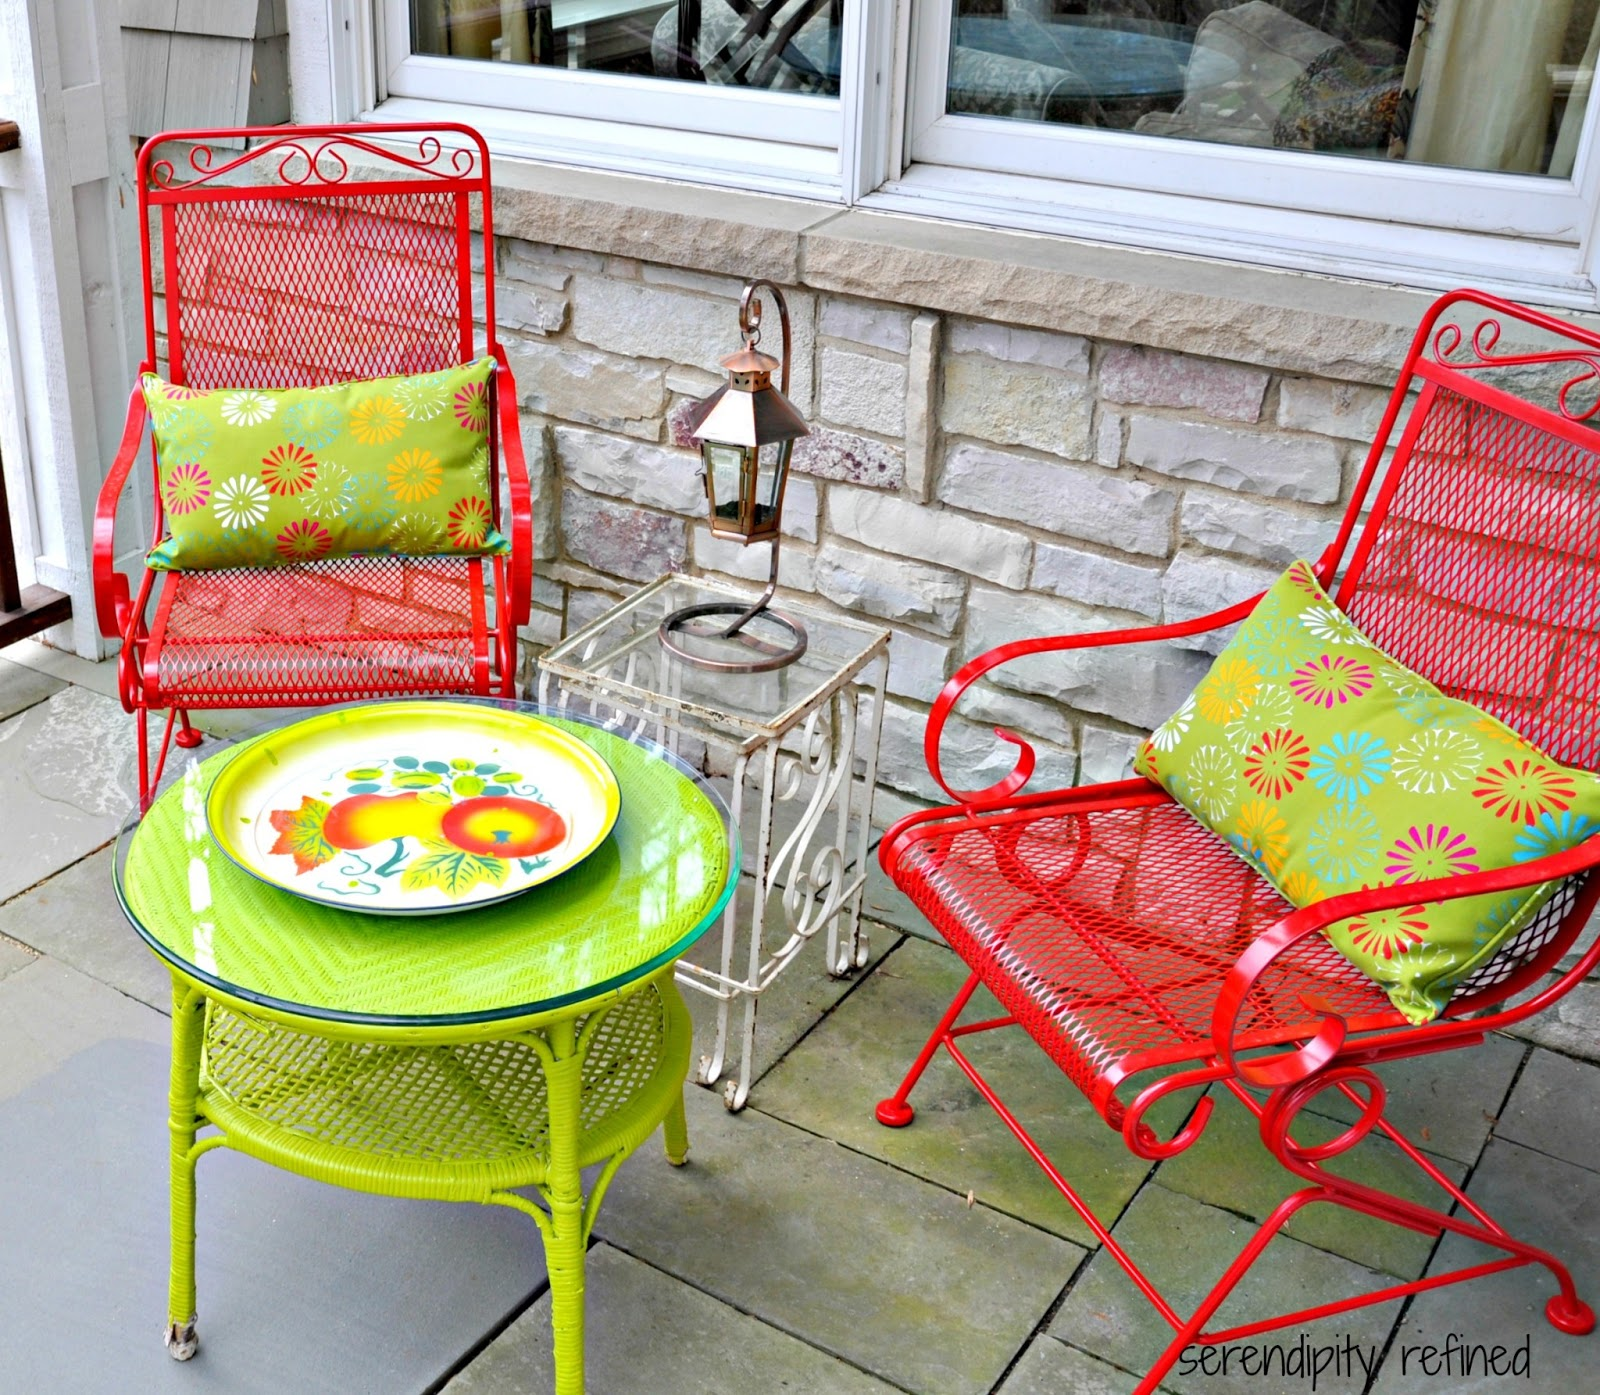 Serendipity Refined Blog Wicker and Wrought Iron Patio  : ColorfuloutdoorpatiofurnitureWhiteWickerIronPatioSprayPaintMakeover1 from www.serendipityrefined.com size 1600 x 1395 jpeg 534kB